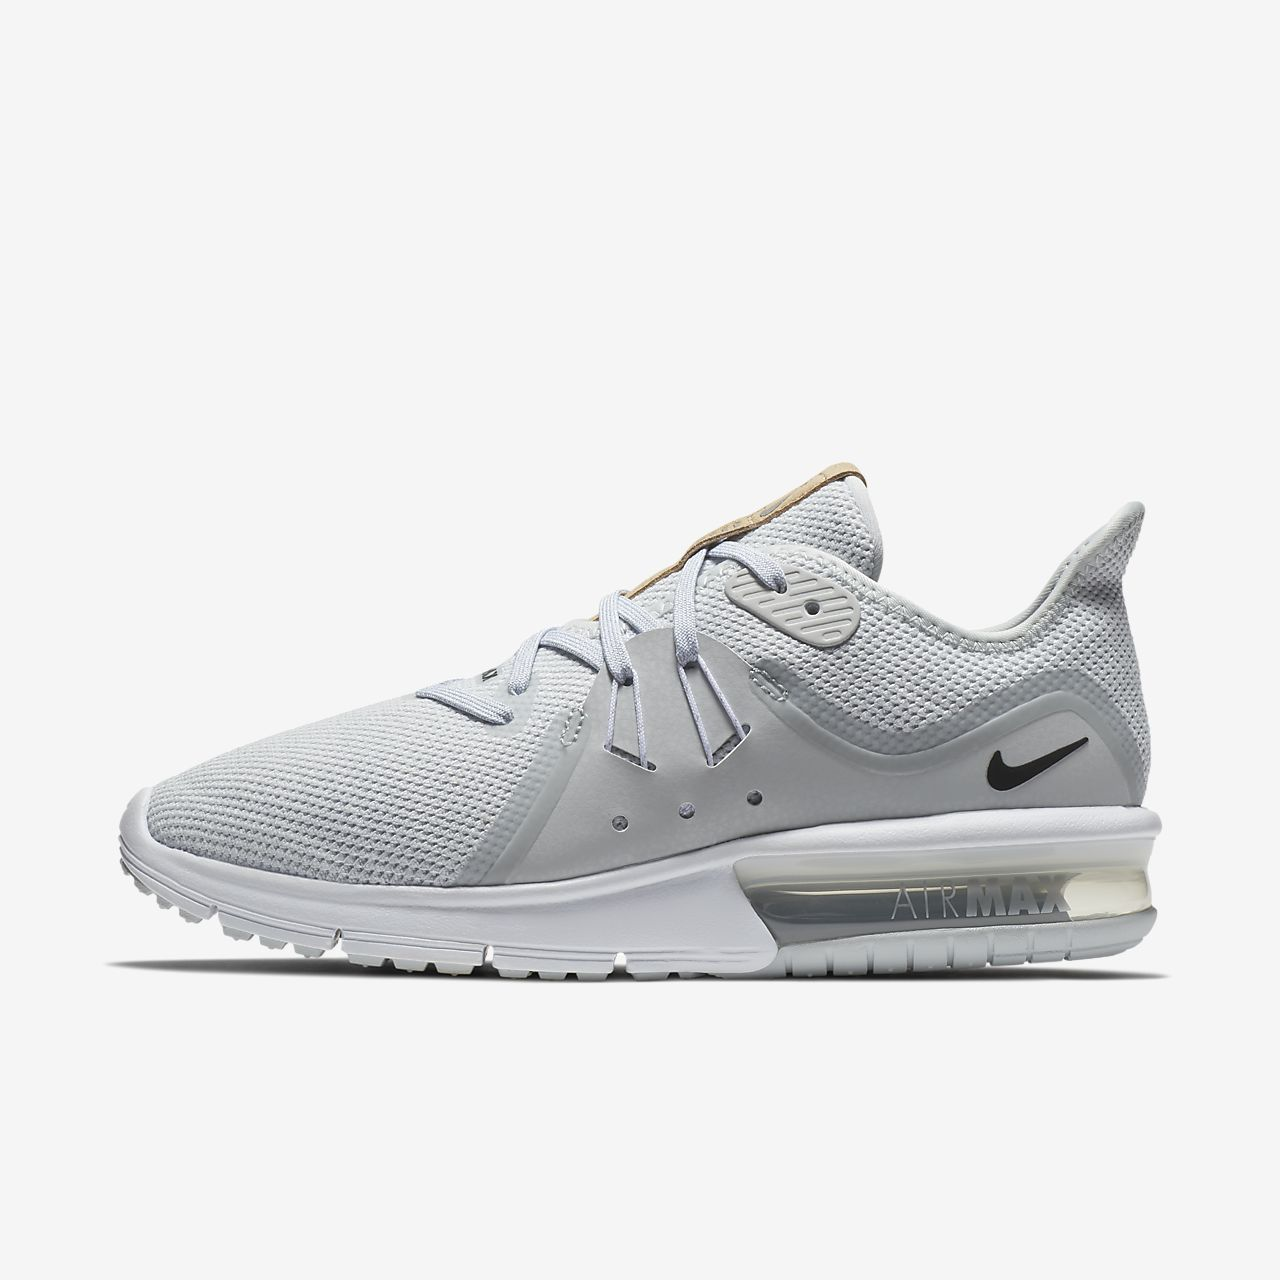 Womens Nike –Nike Shoes And Features